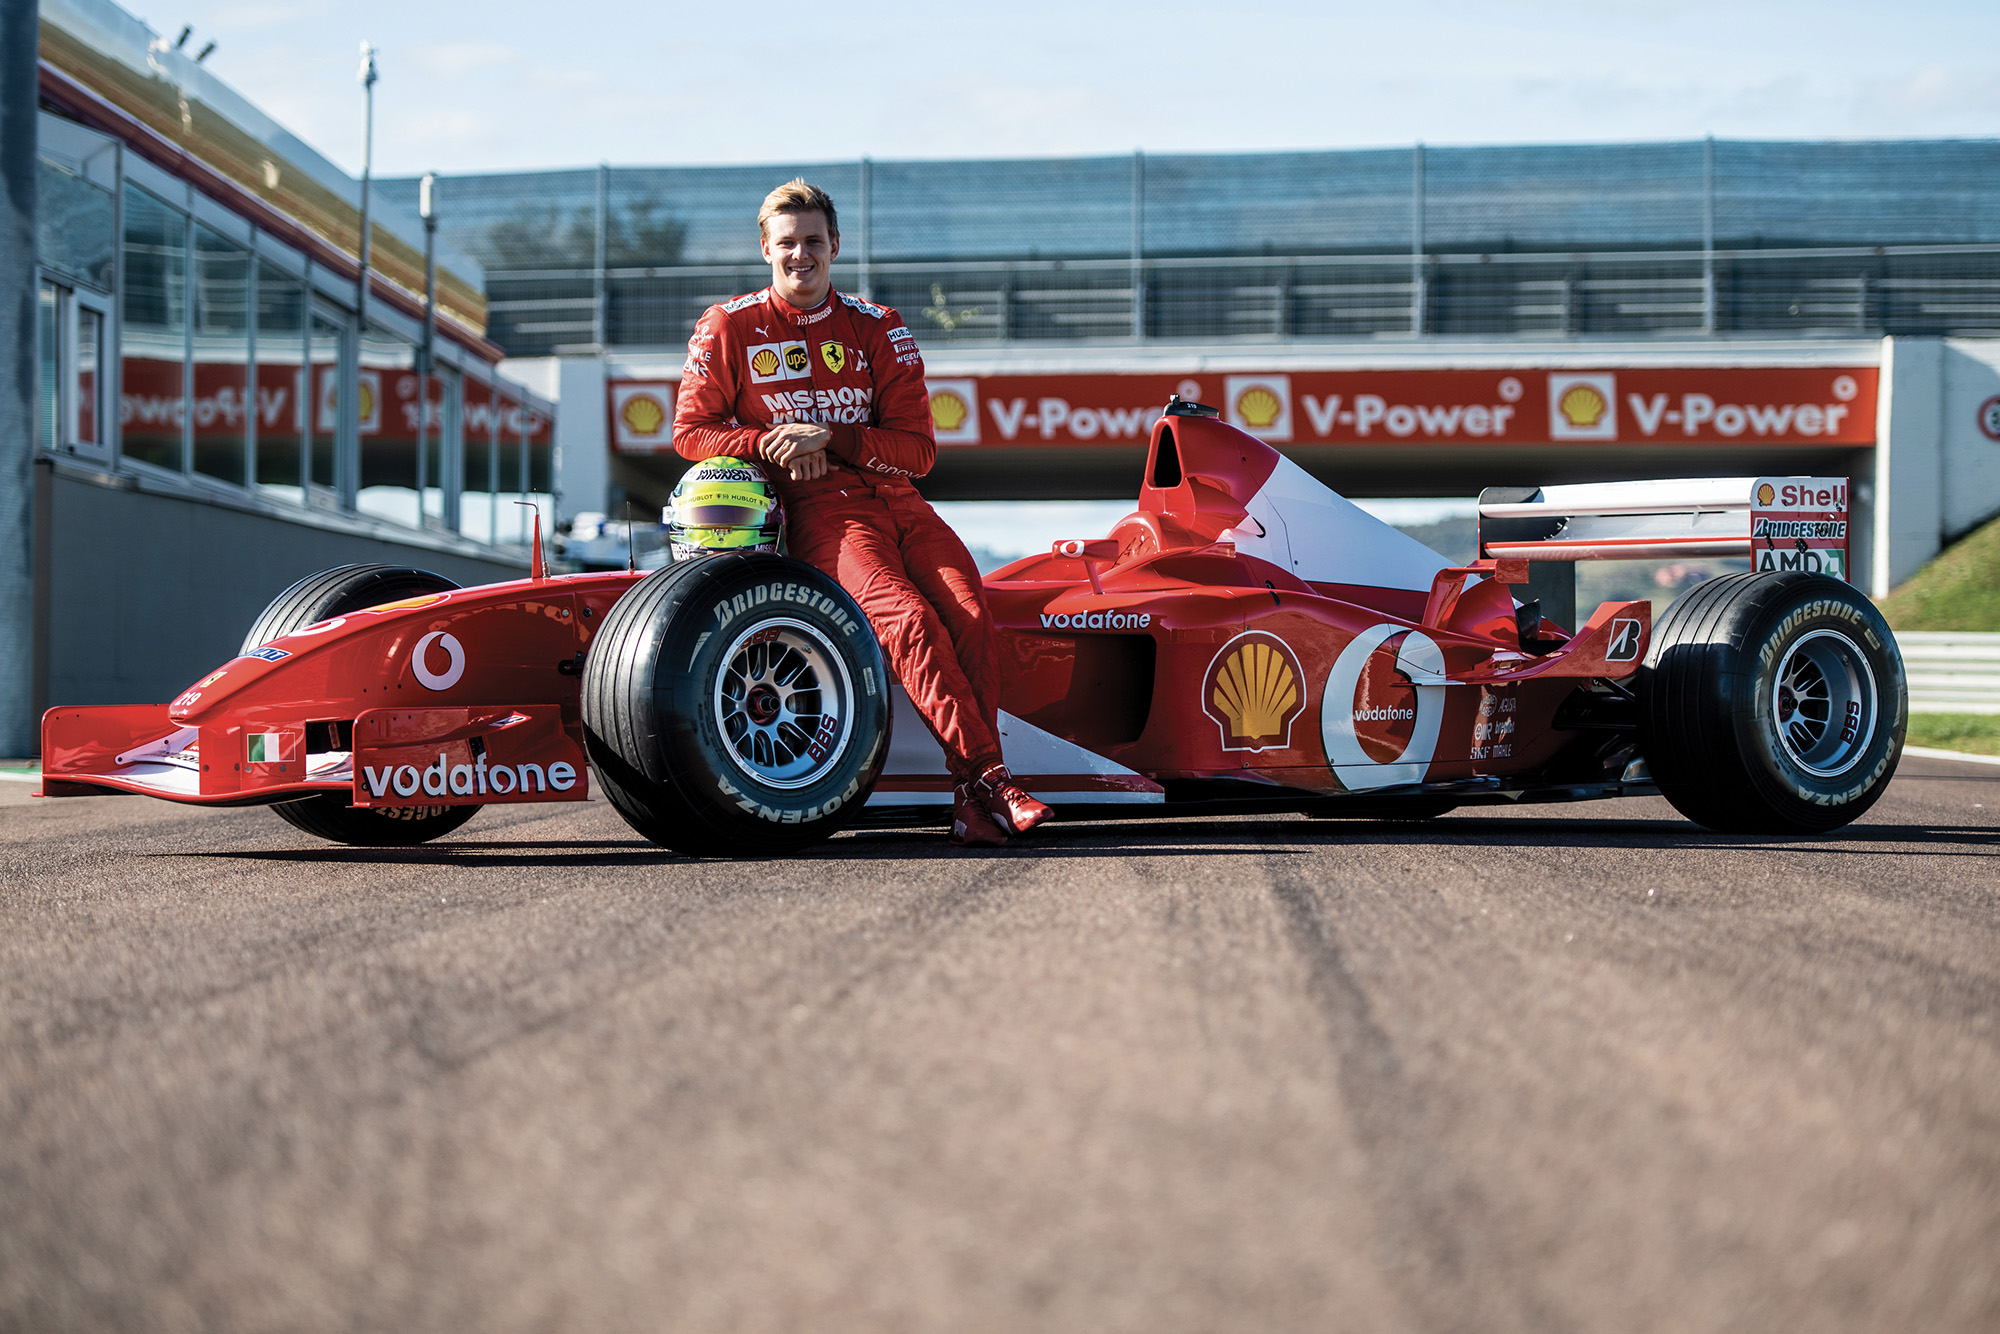 Video: Mick Schumacher drives dad's 2002 F1 championship-winning Ferrari